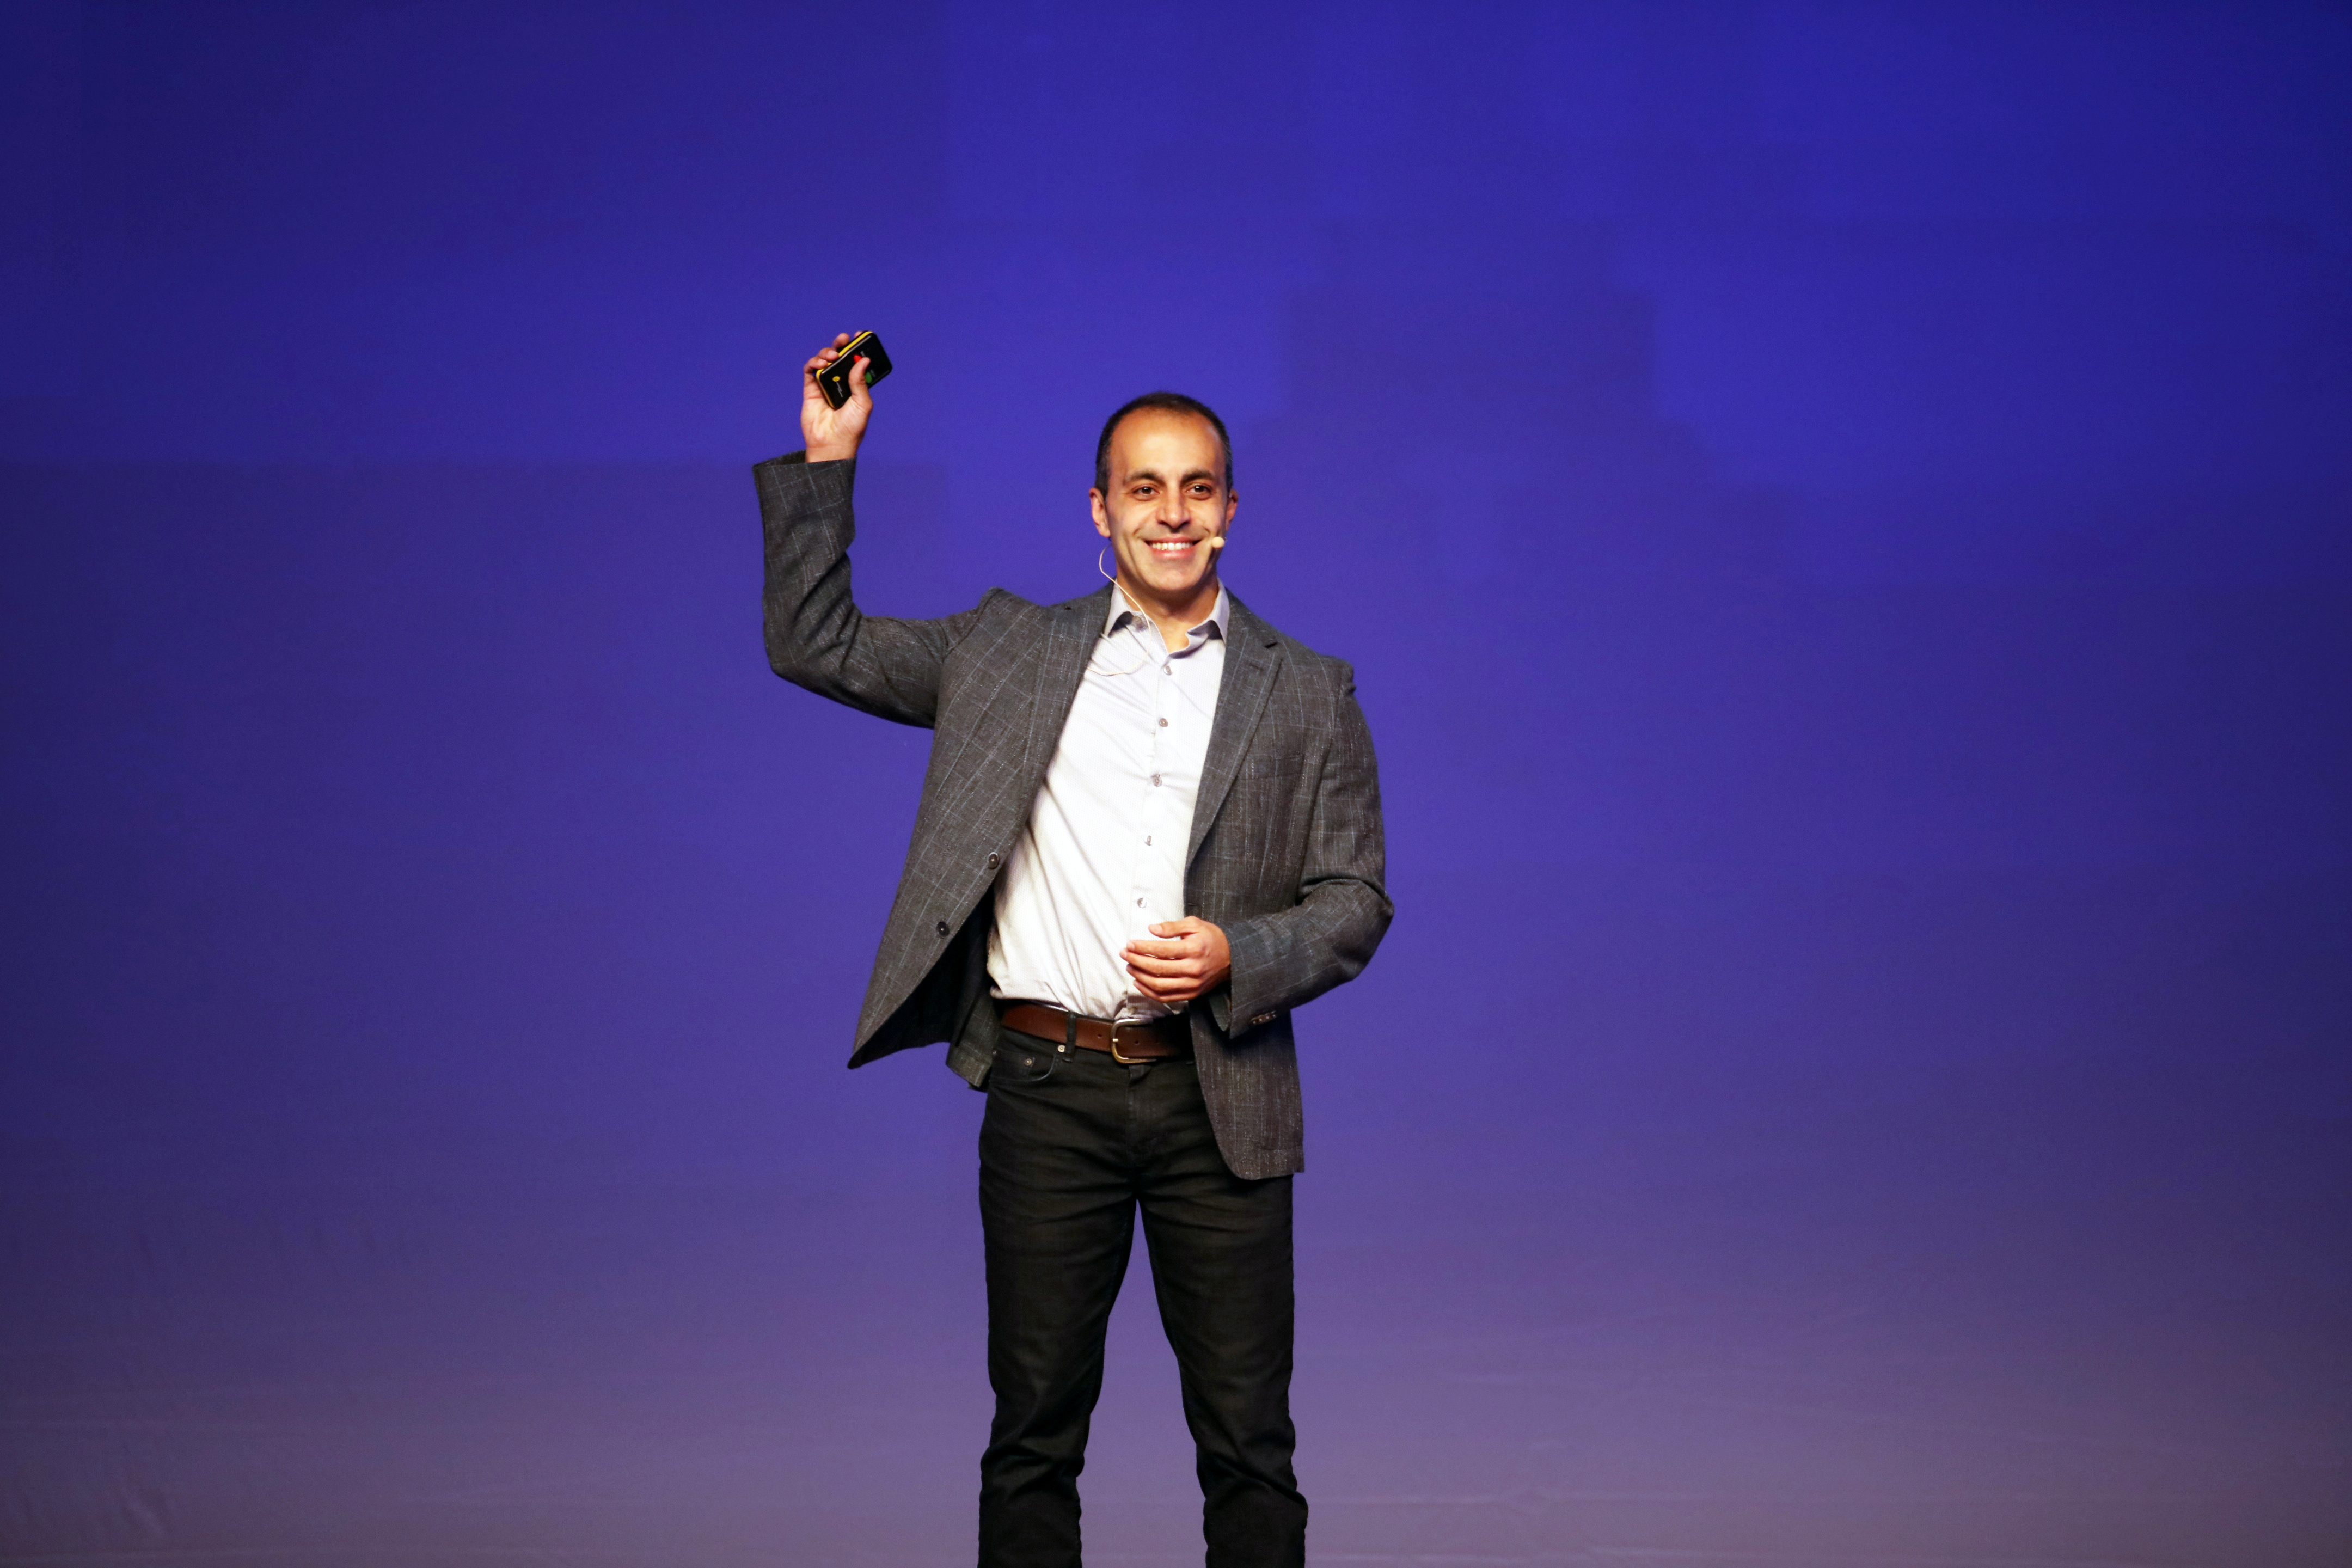 Databricks' CEO and co-founder Ali Ghodsi speaks at Spark + AI Summit Europe in London, Britain in October, 2019.  Courtesy of Databricks/Handout via REUTERS